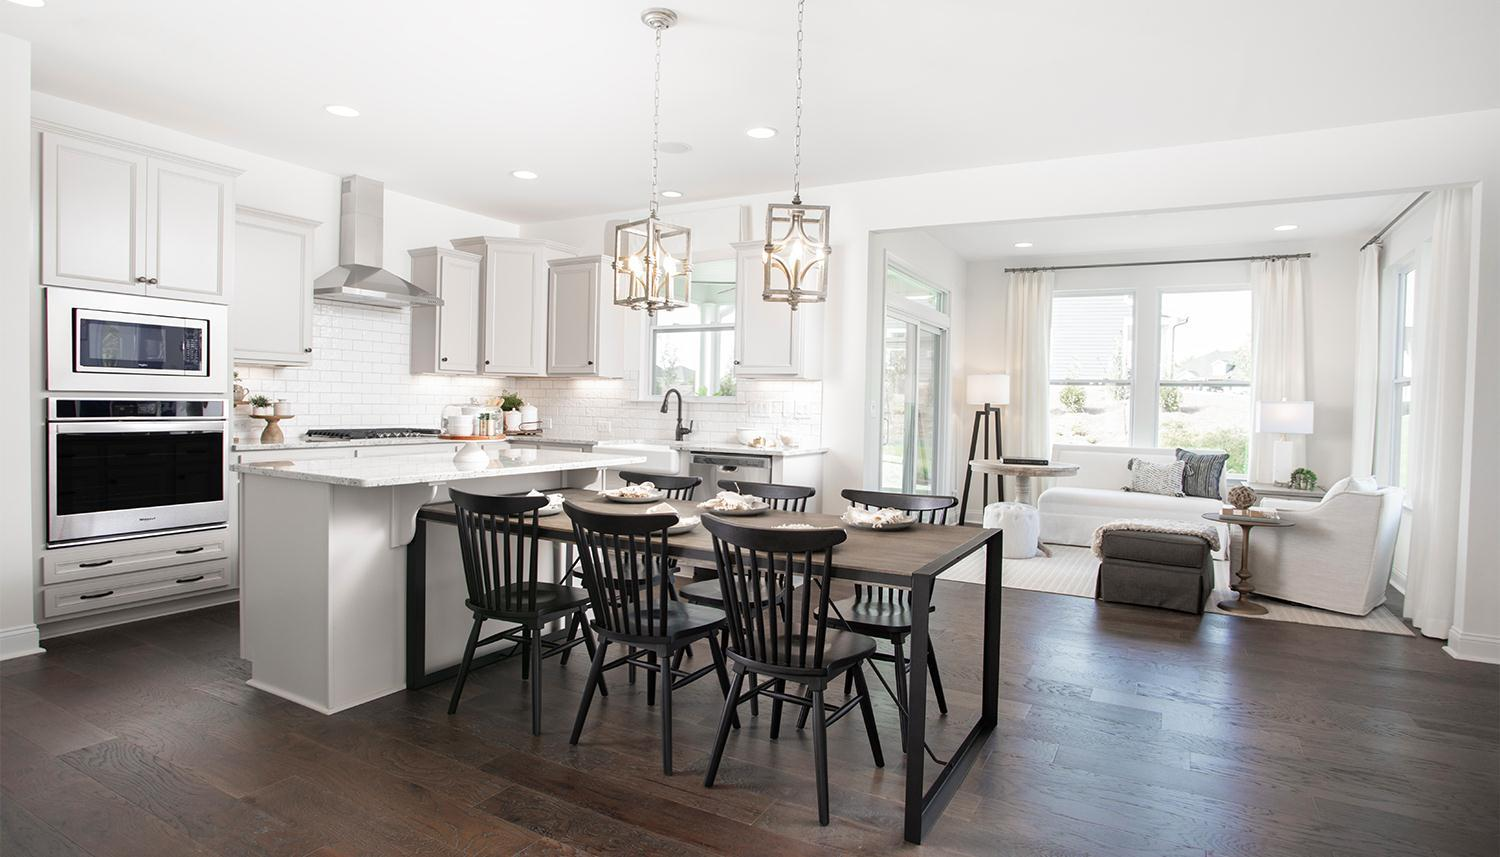 Kitchen featured in the Drayton By Dan Ryan Builders in Charlotte, NC